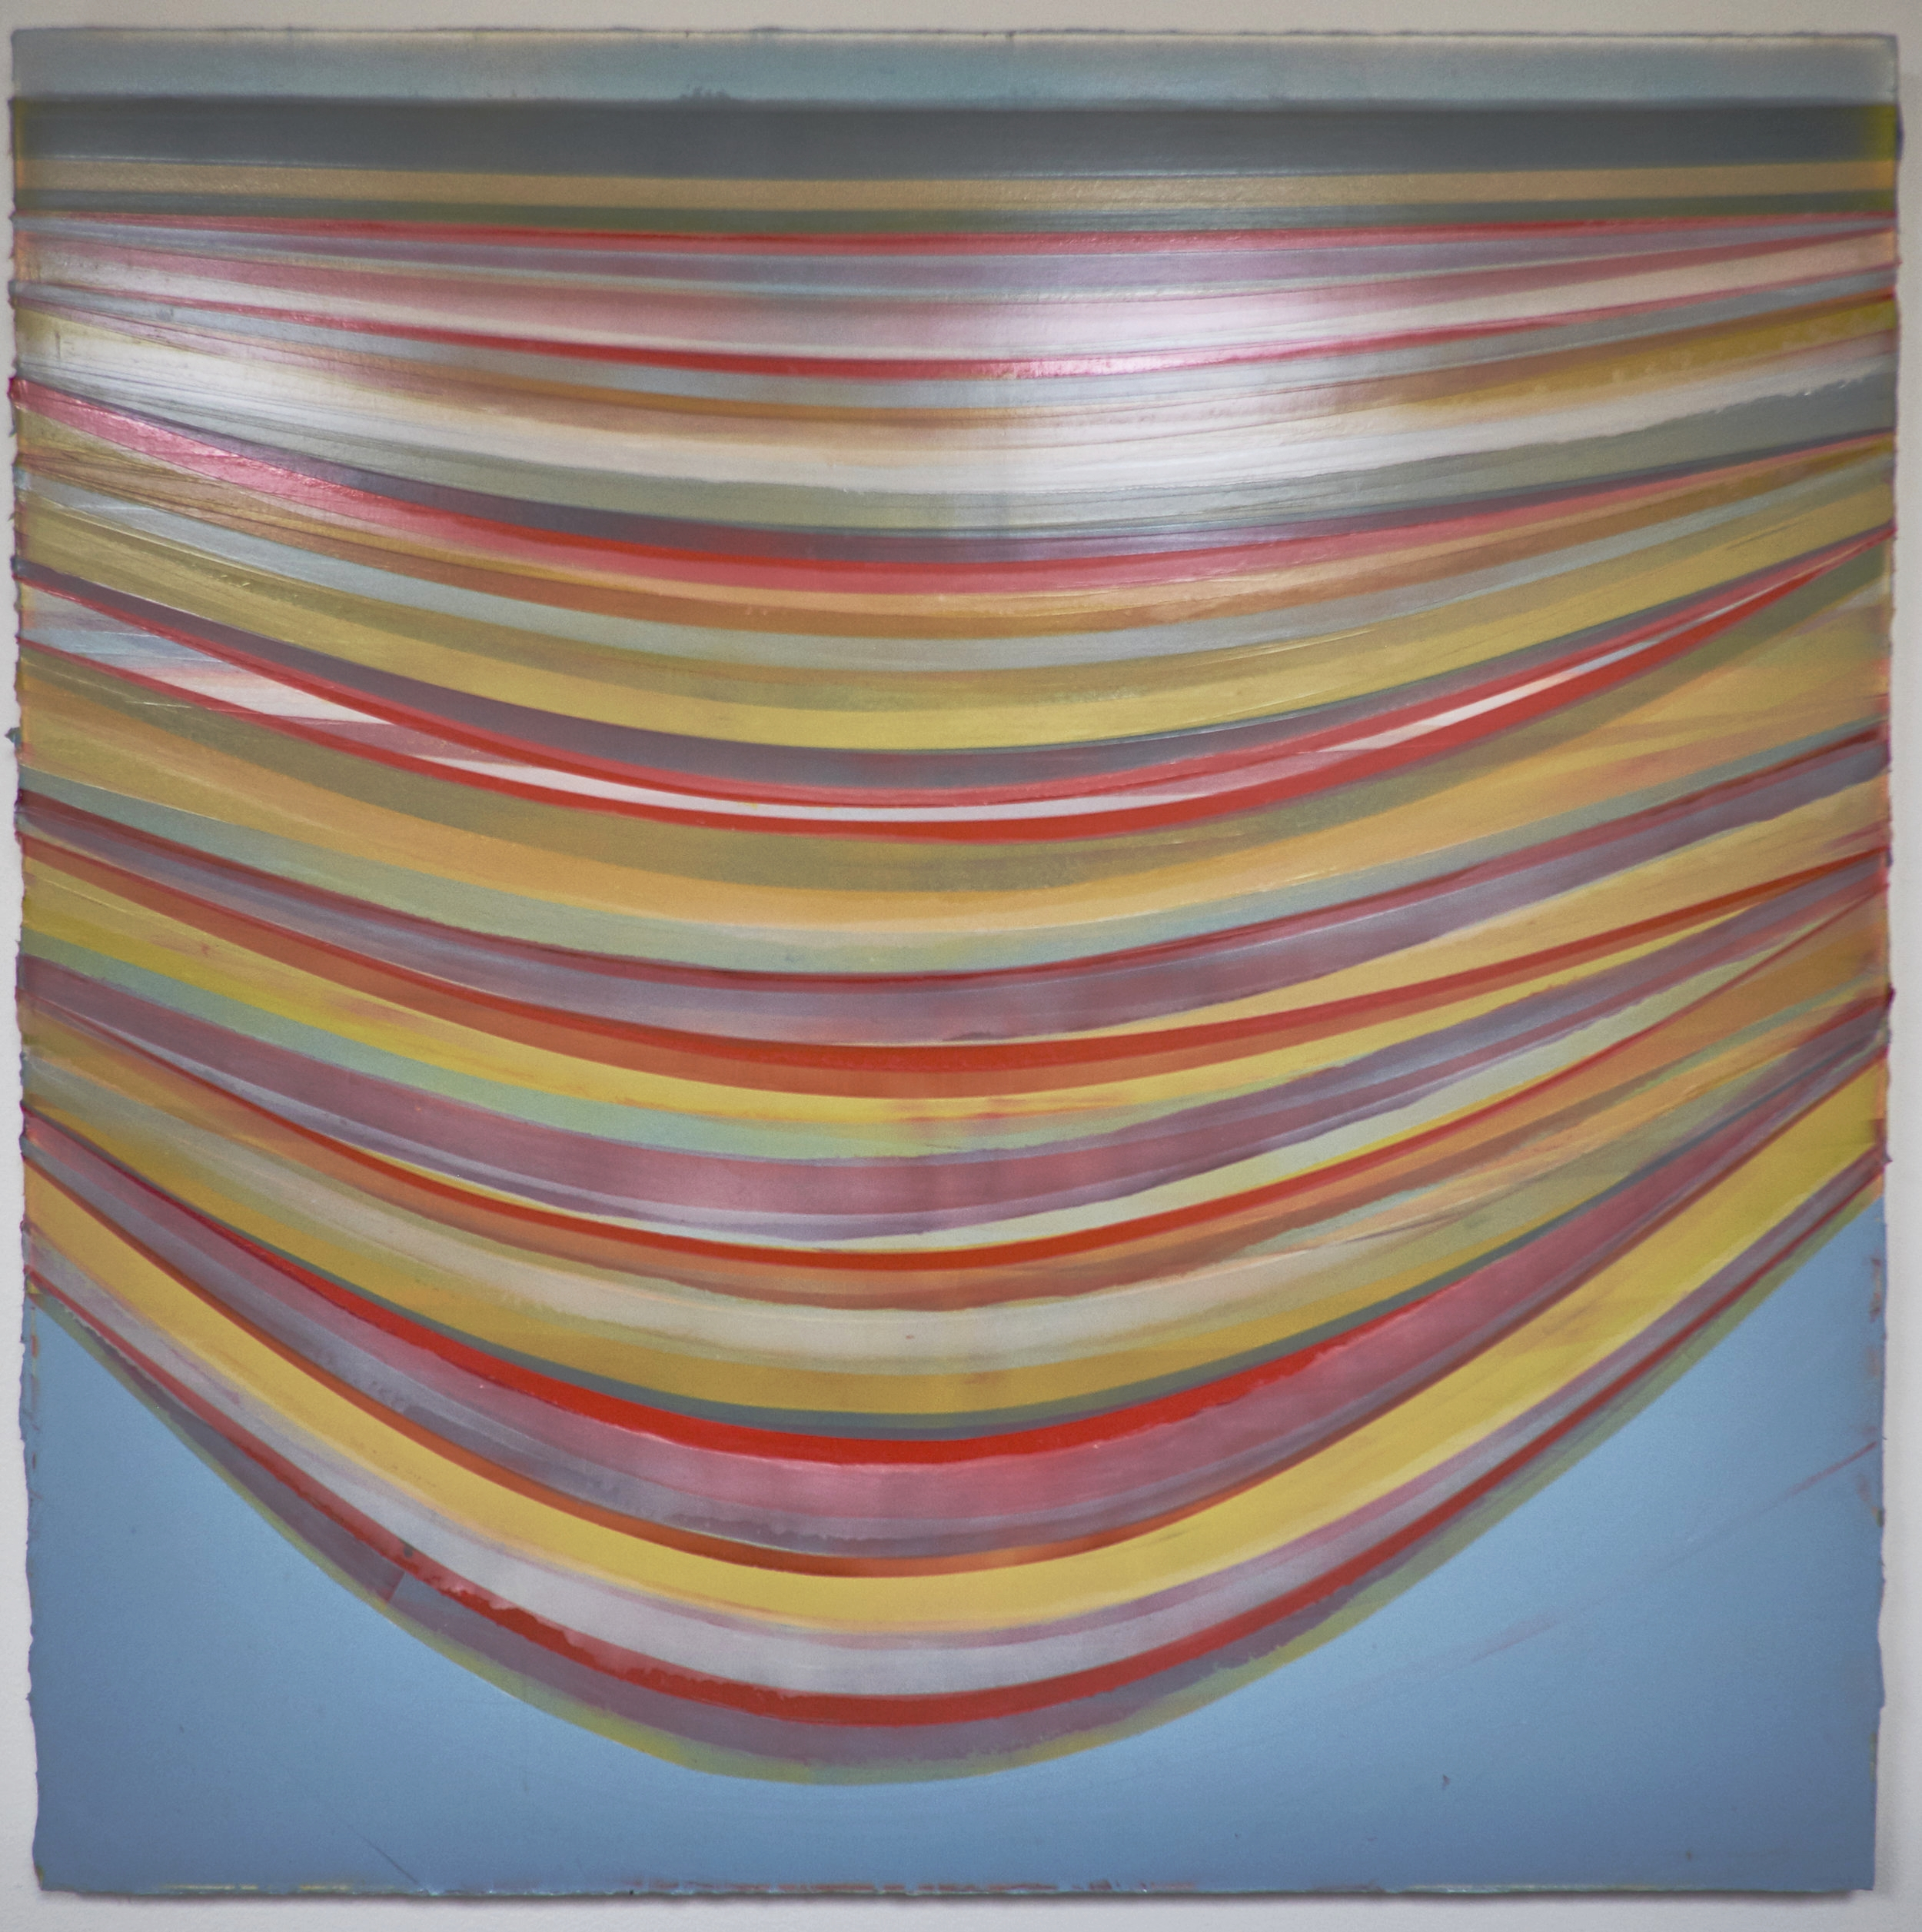 "UNTITLED #74 , 2009  ACRYLIC ON CANVAS, 48"" x 48"" (HAS964)"